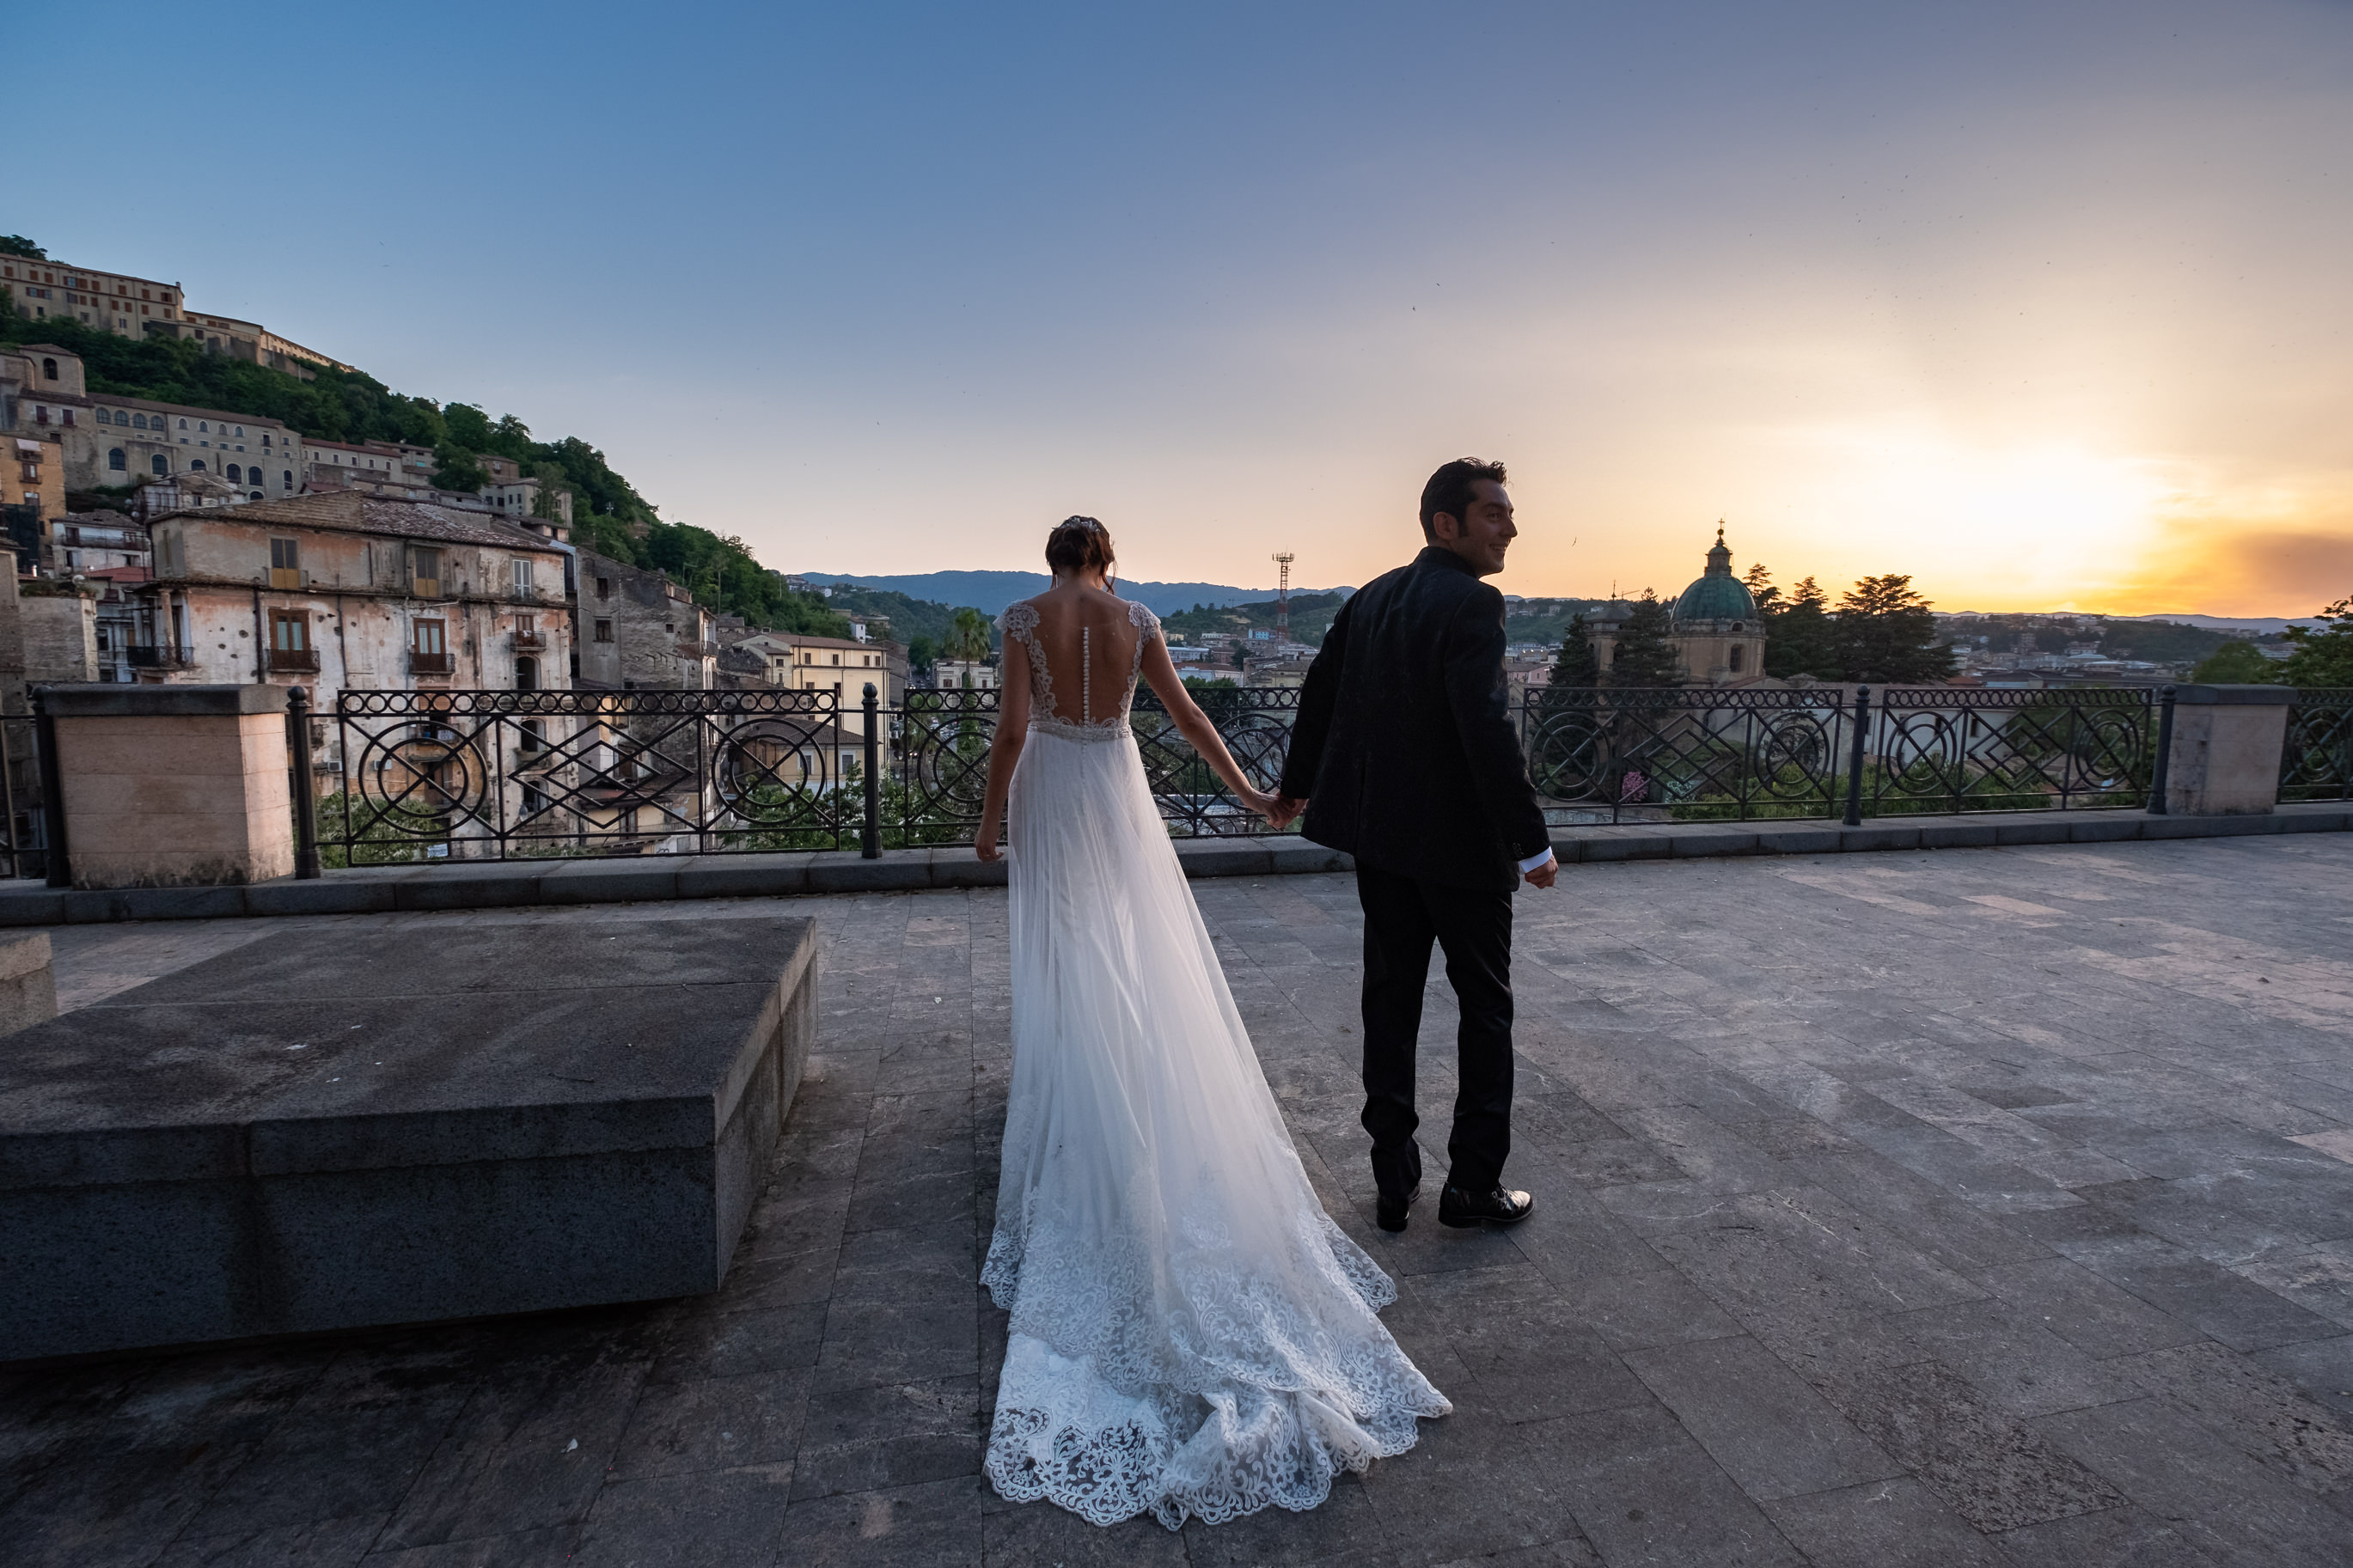 photography wedding reportage italy